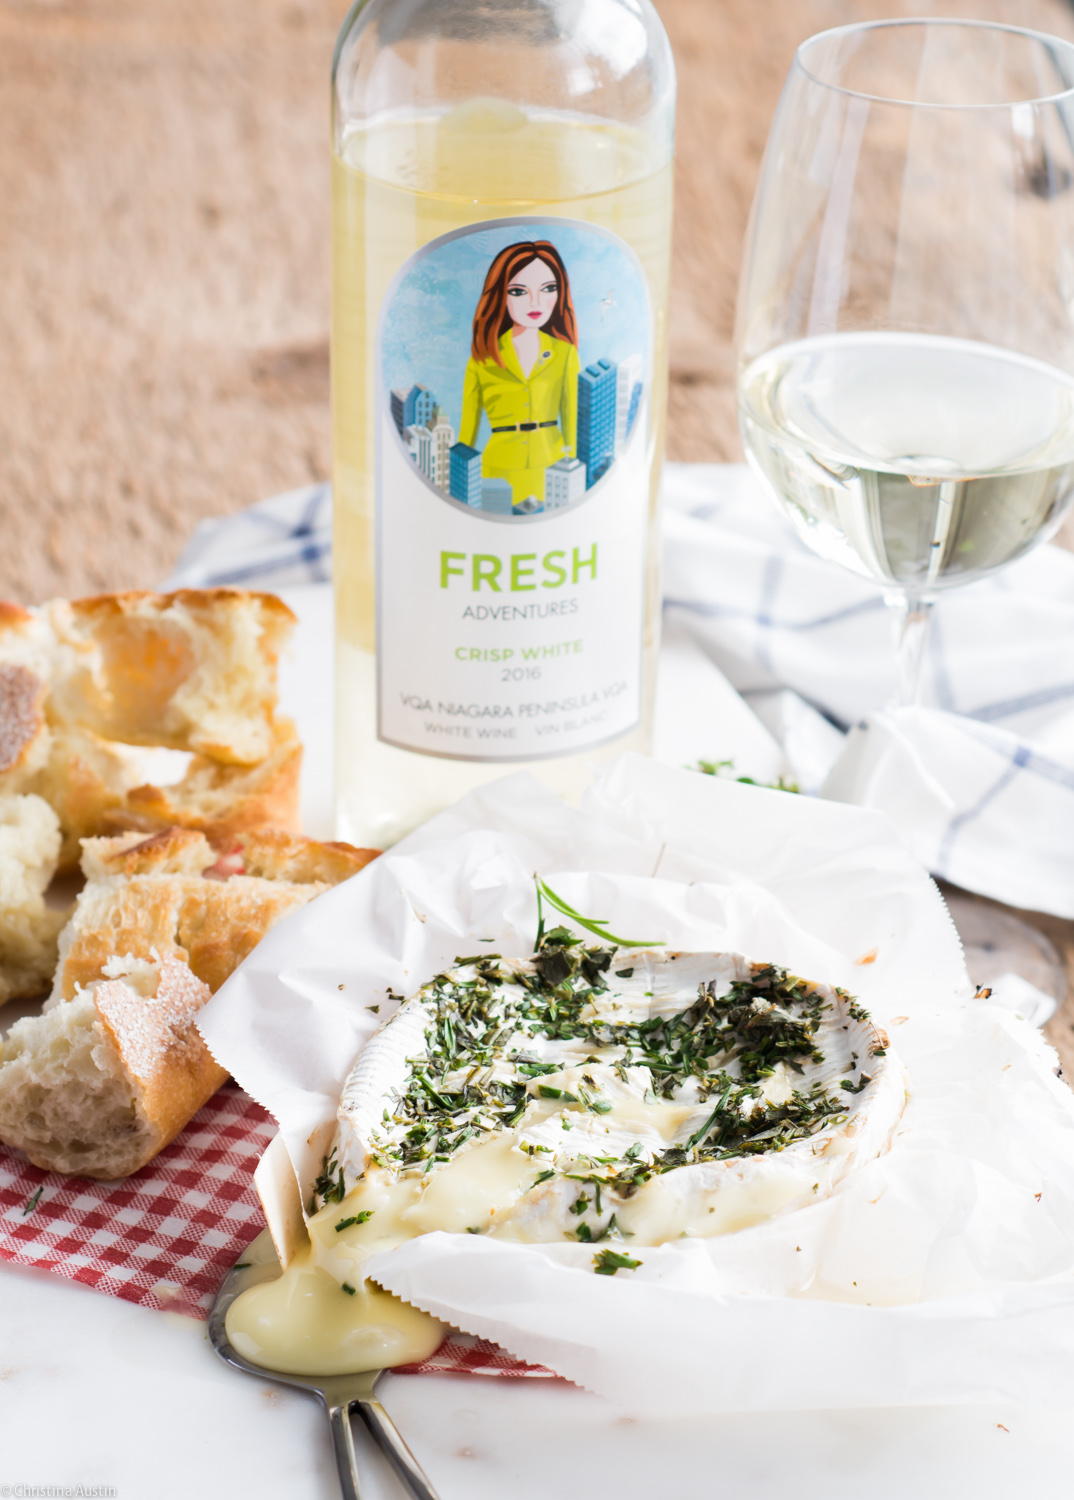 Camembert Baked with Herbs & White Wine